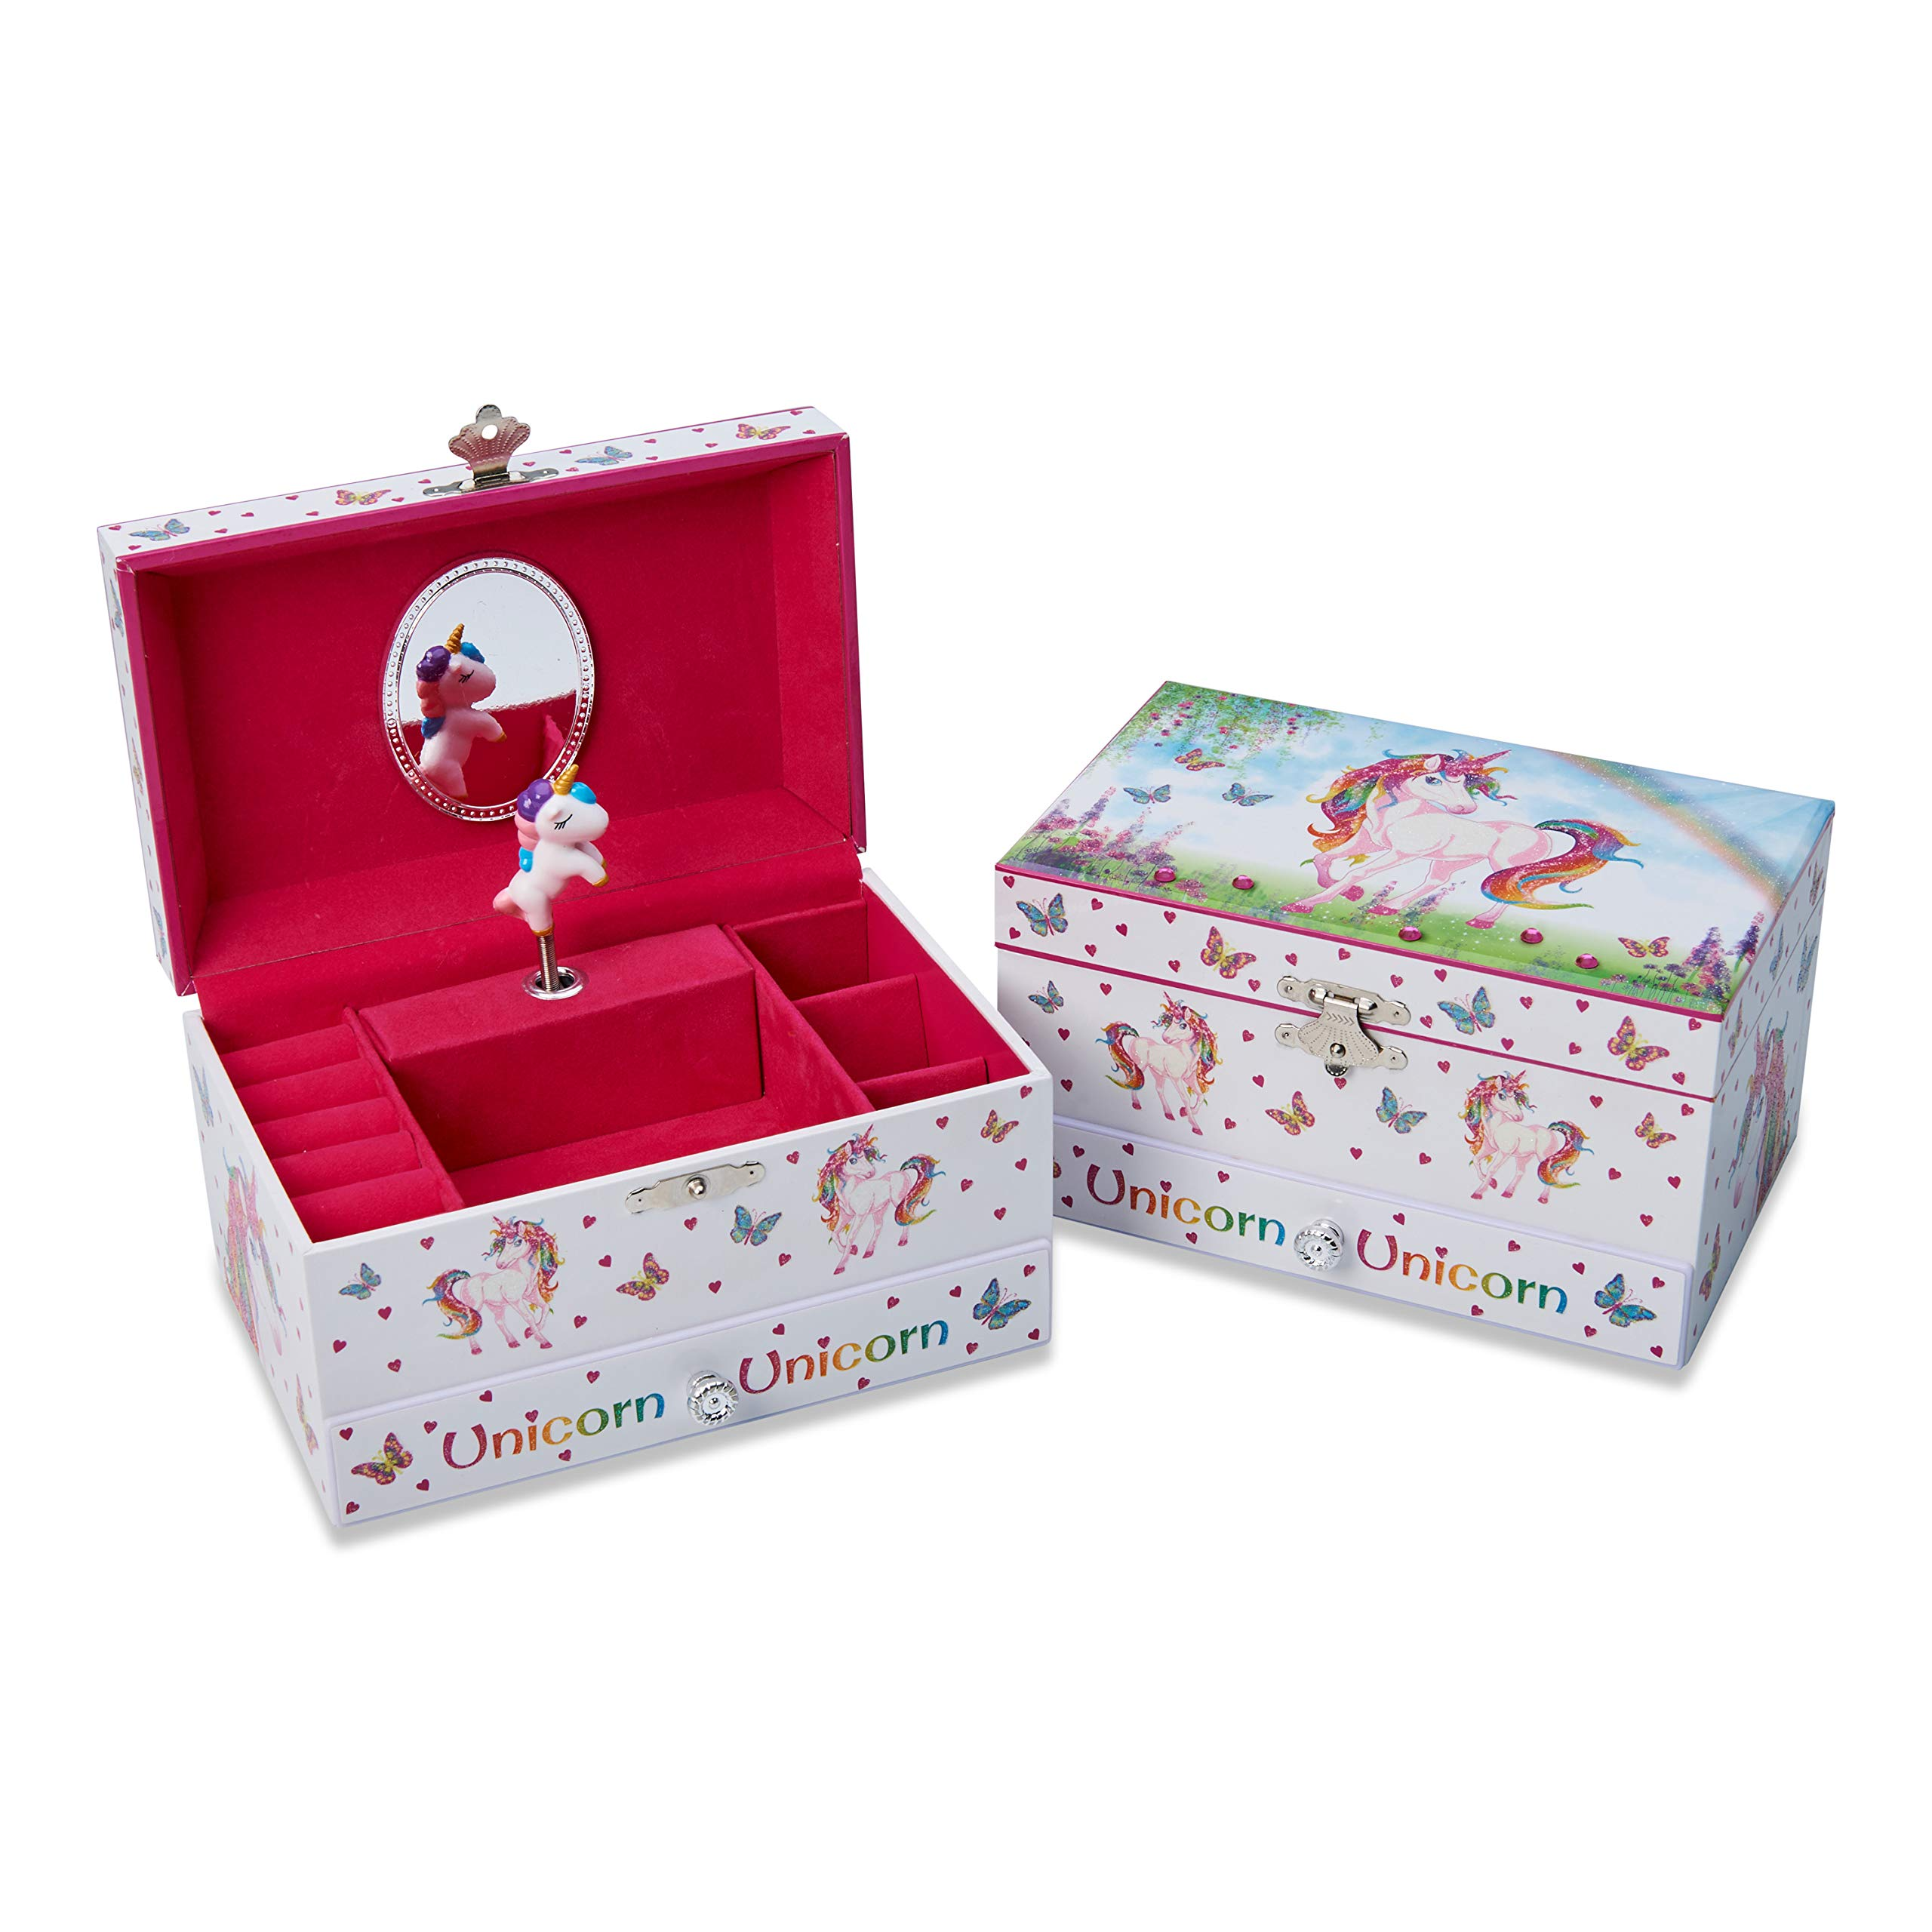 Lucy Locket Magical Unicorn Musical Jewelry Box for Children - Pink Glittery Jewelry Box for Girls and Boys with Ring Holder